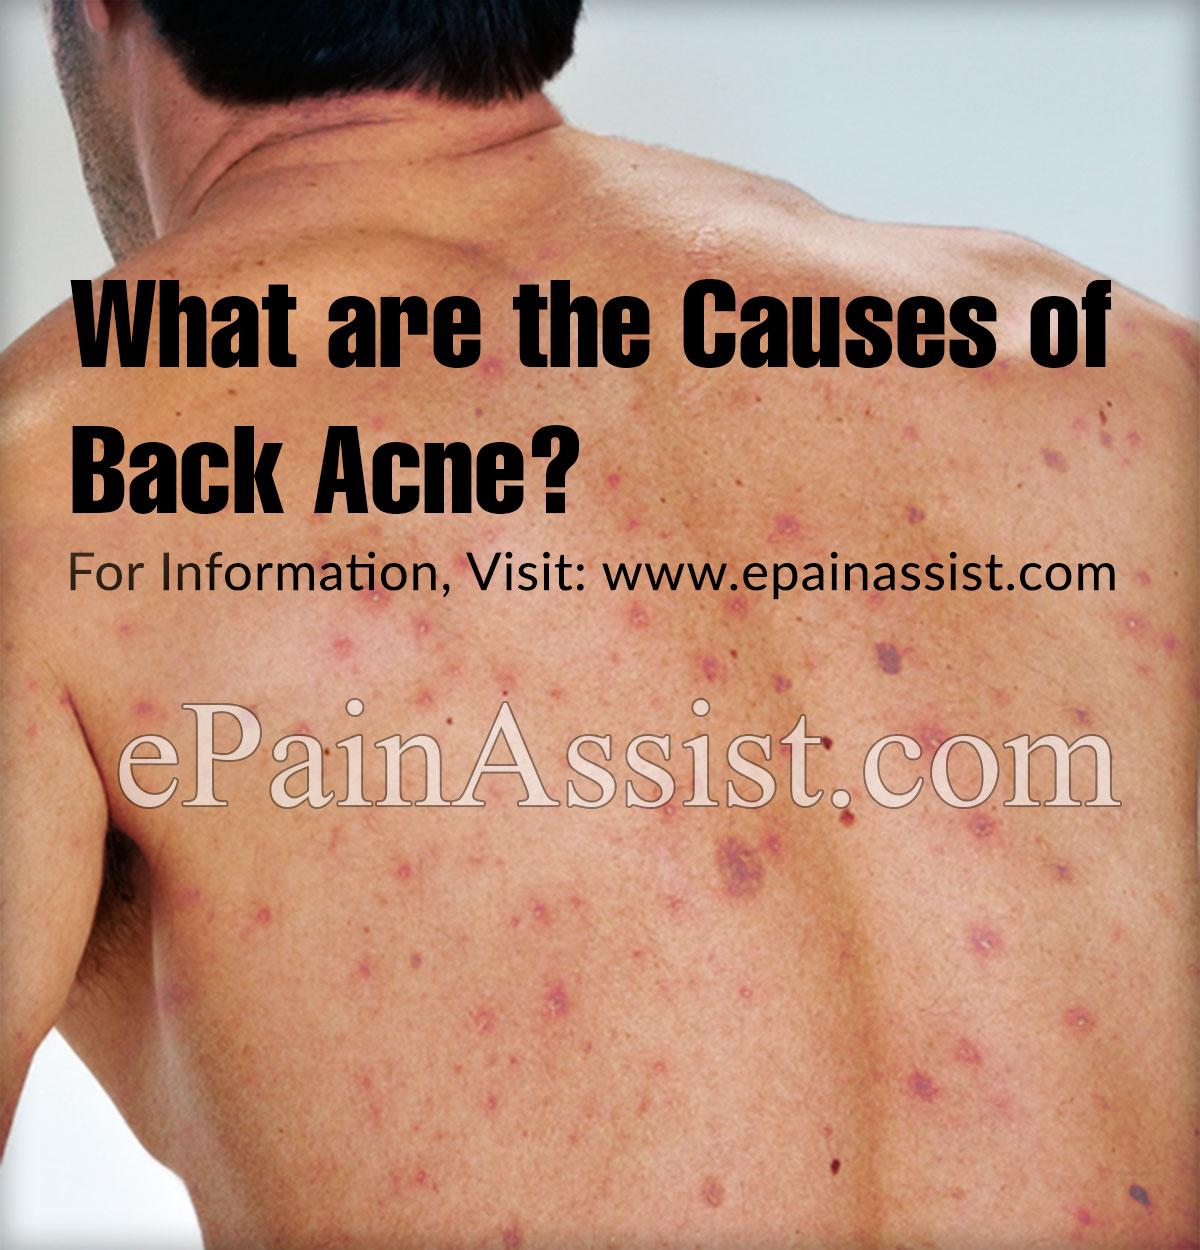 What are the Causes of Back Acne?